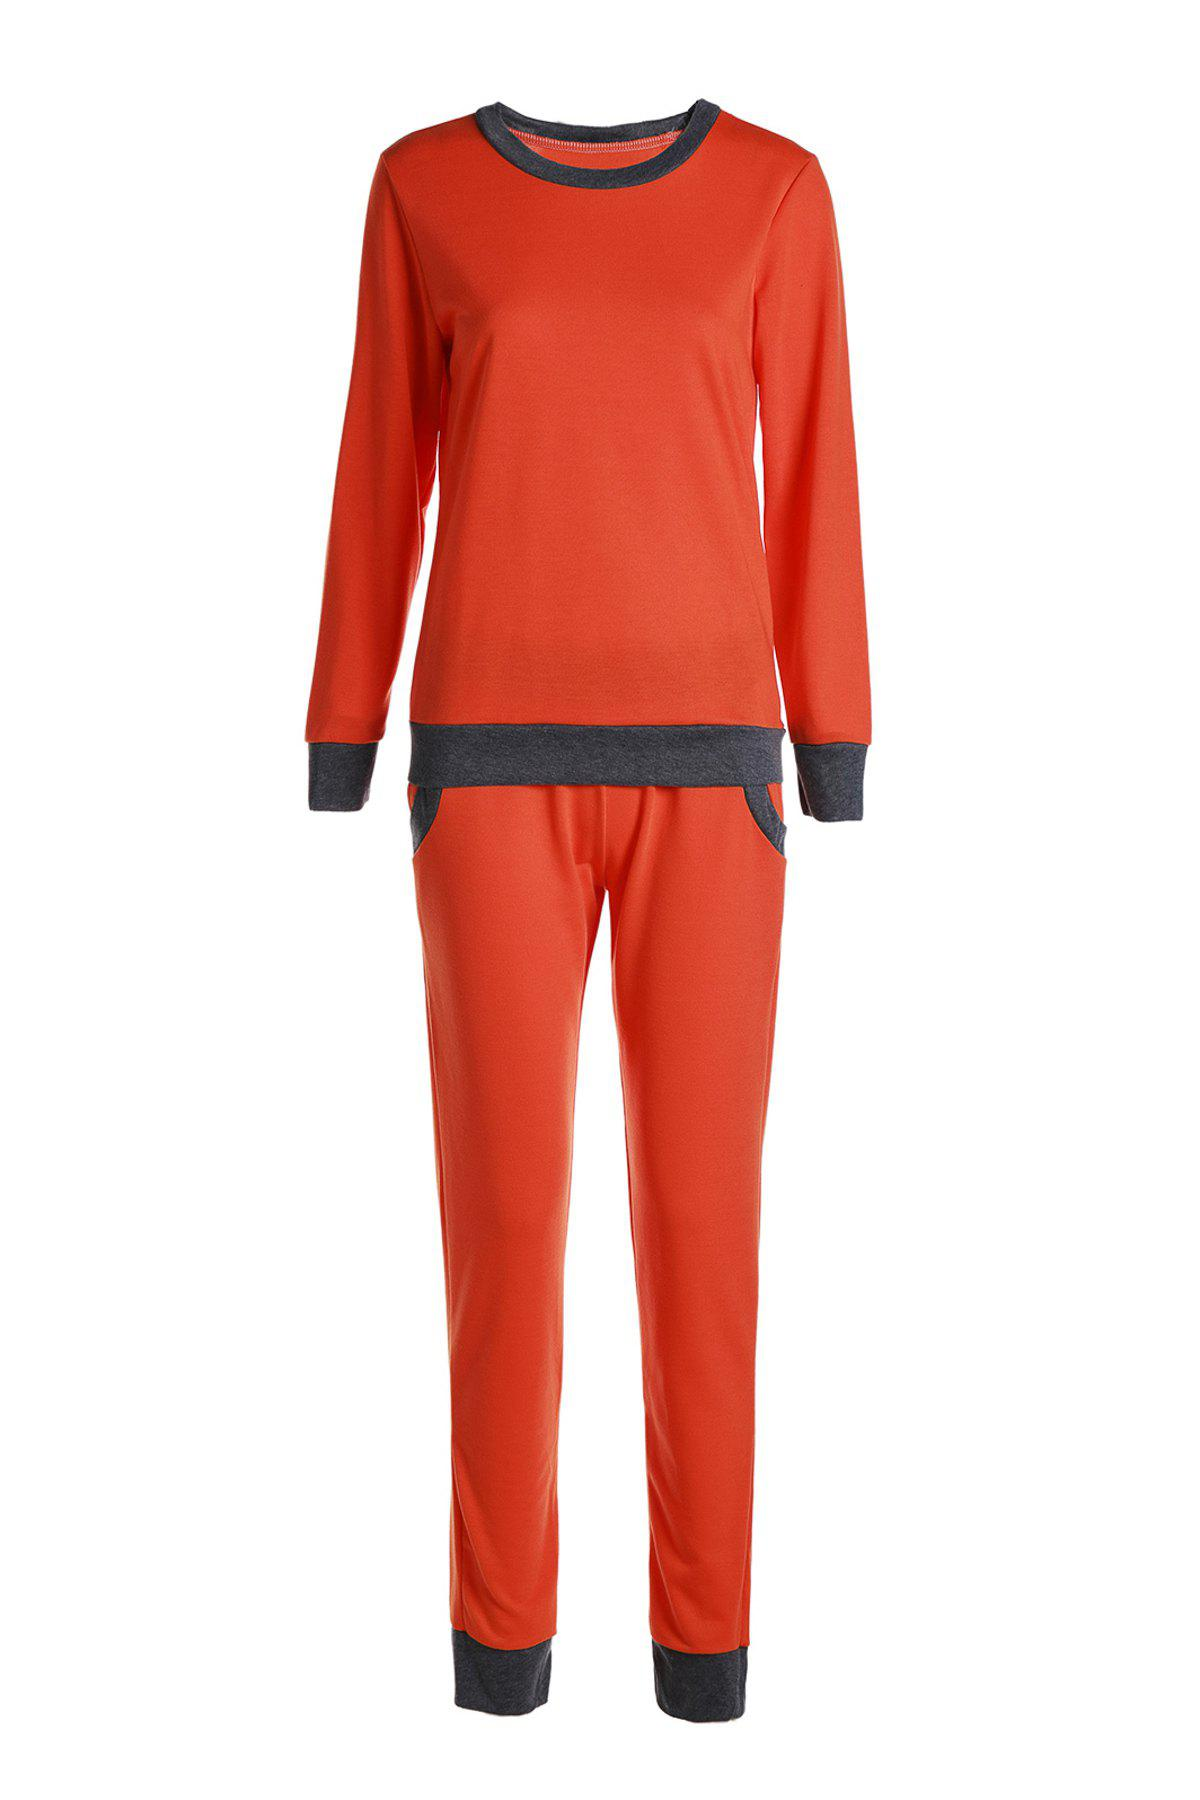 Casual col rond manches longues Activewear de poche design Color Block Femmes Suit - Tangerine L